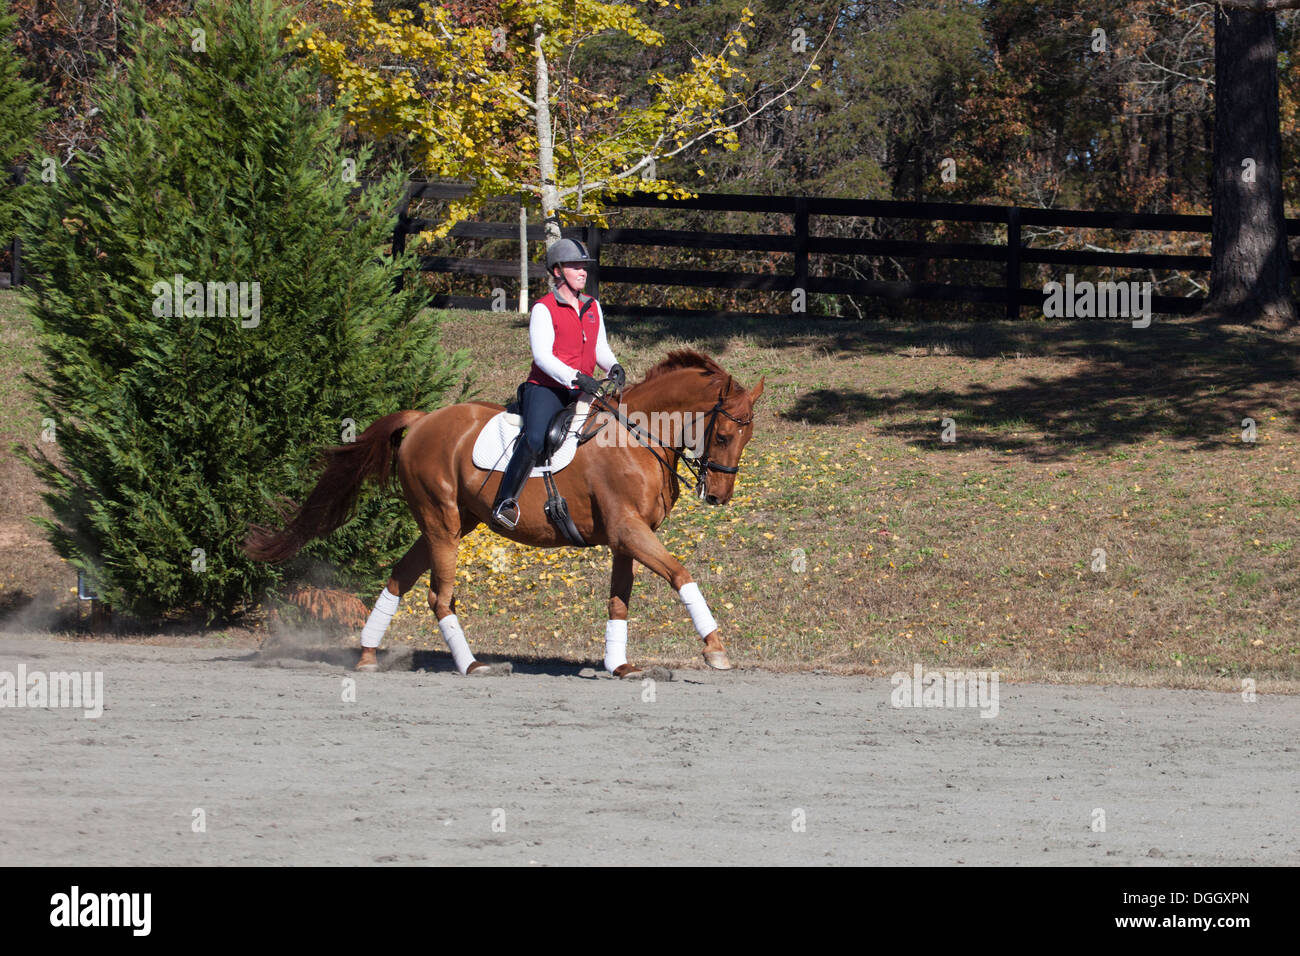 Woman riding chestnut dressage horse - Stock Image